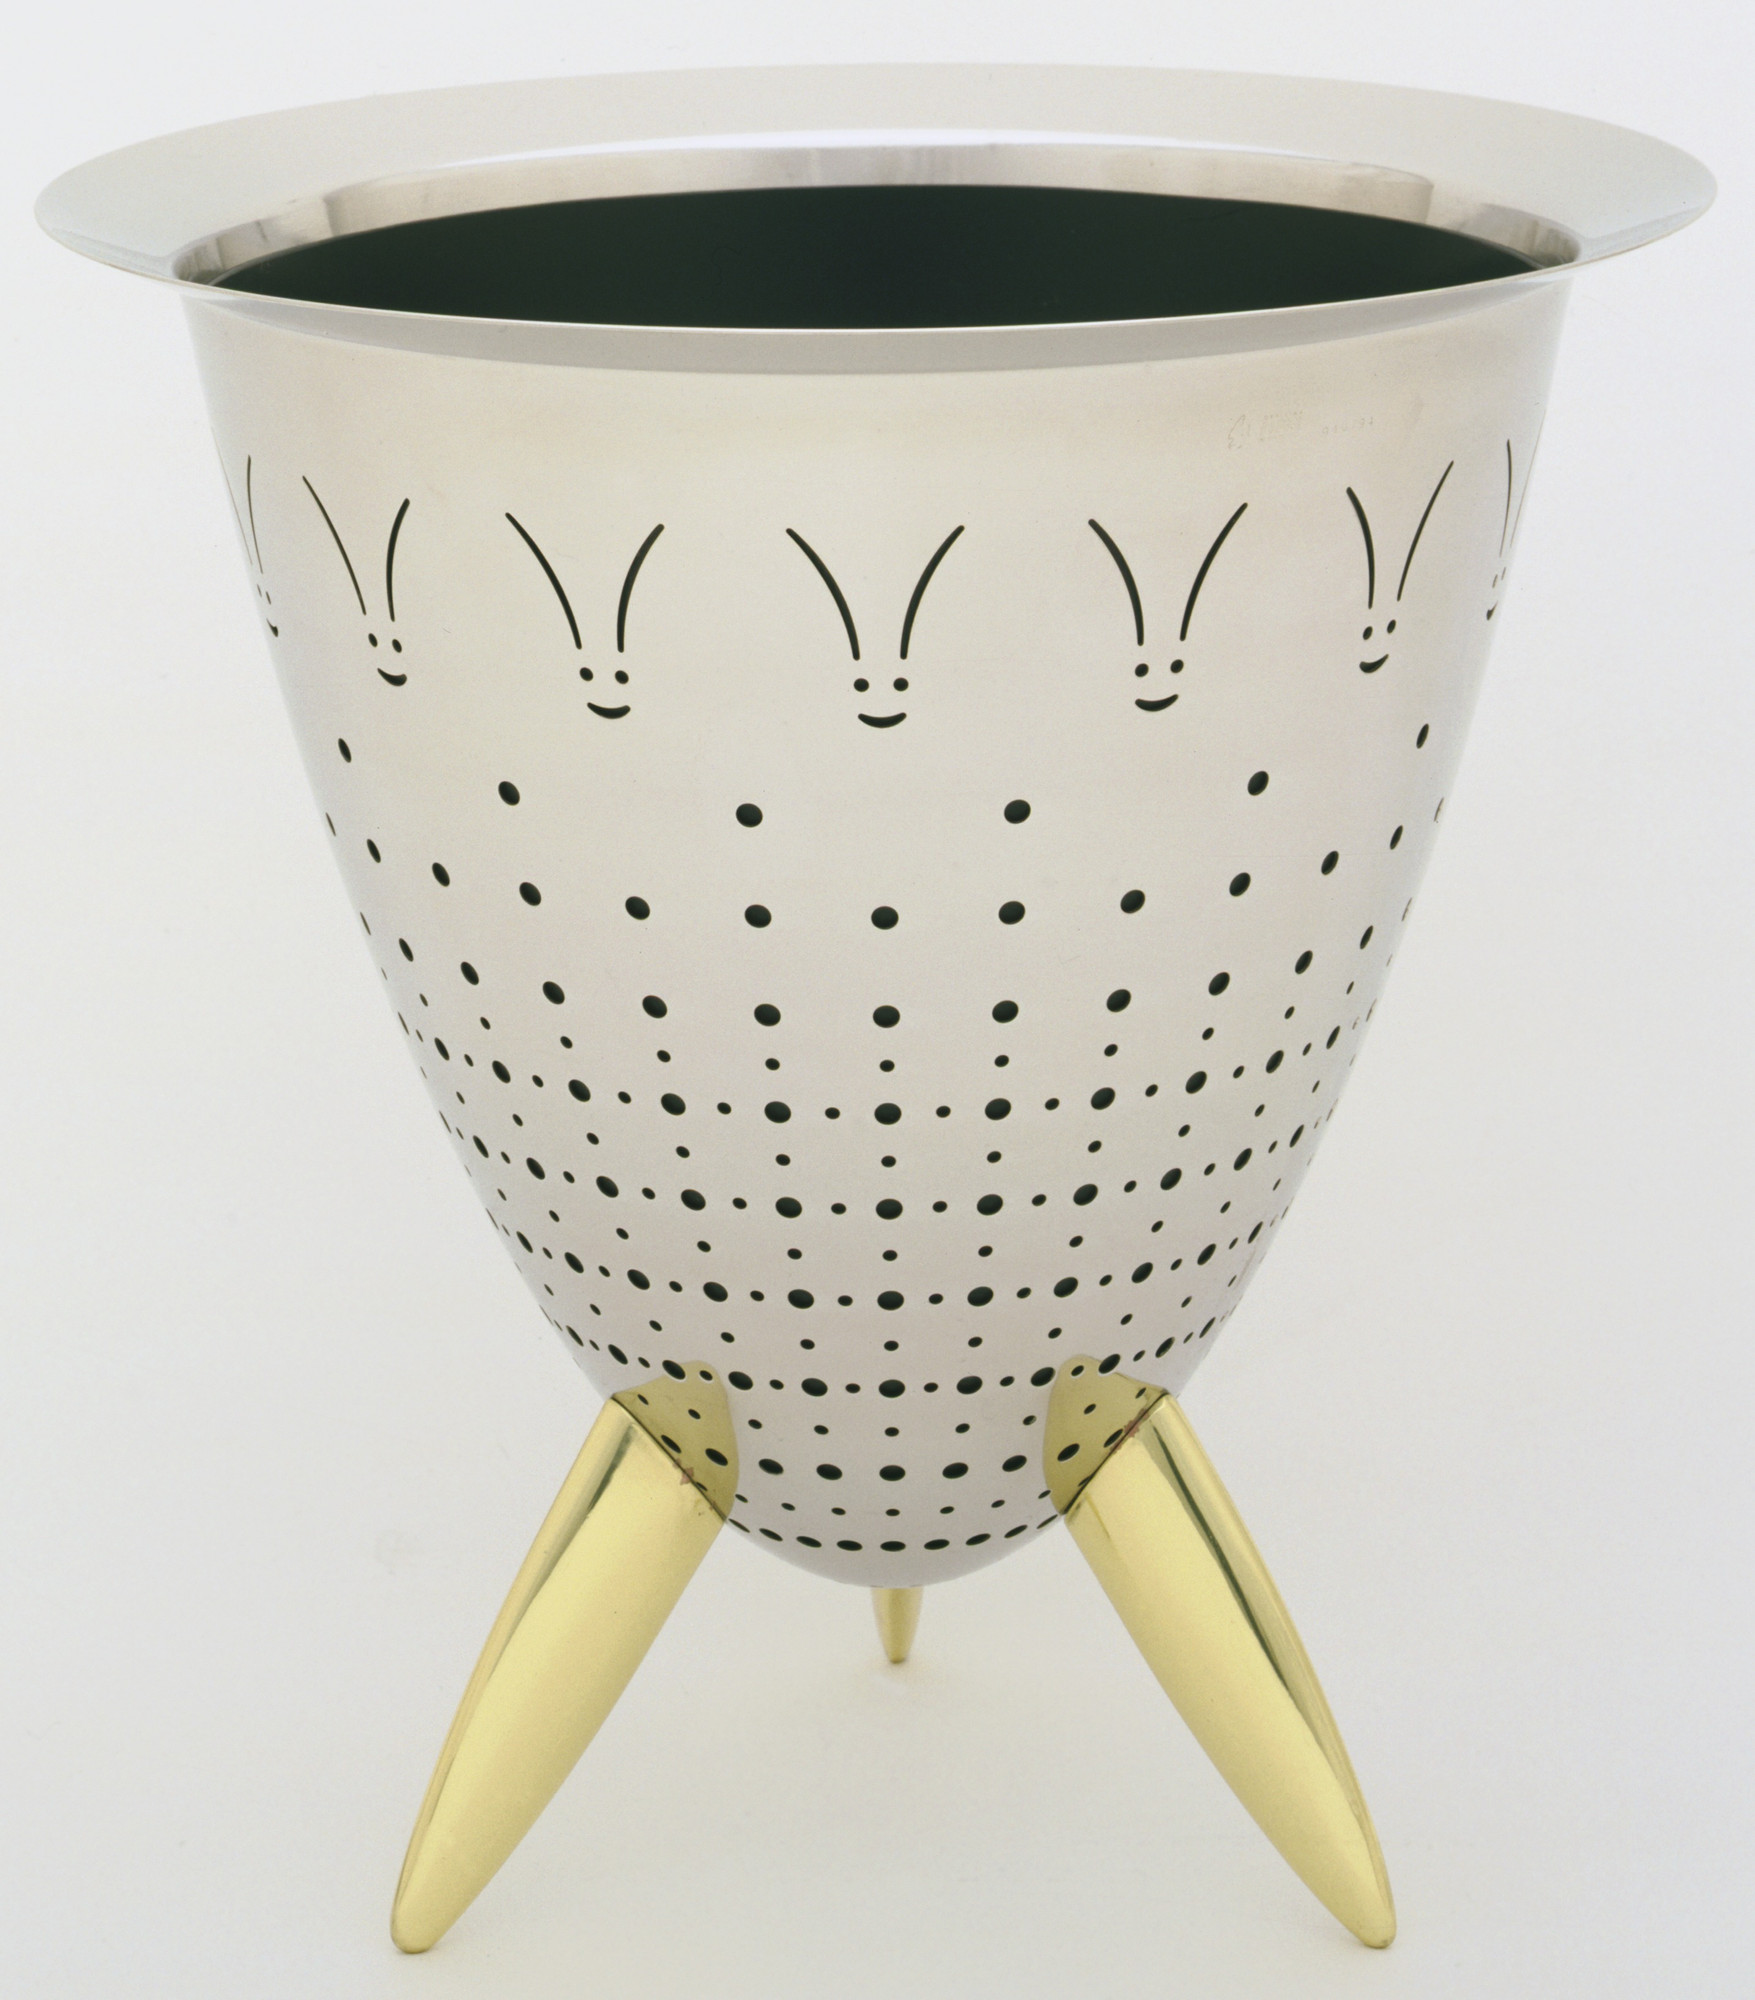 Philippe Starck. Max le Chinois Colander. 1987